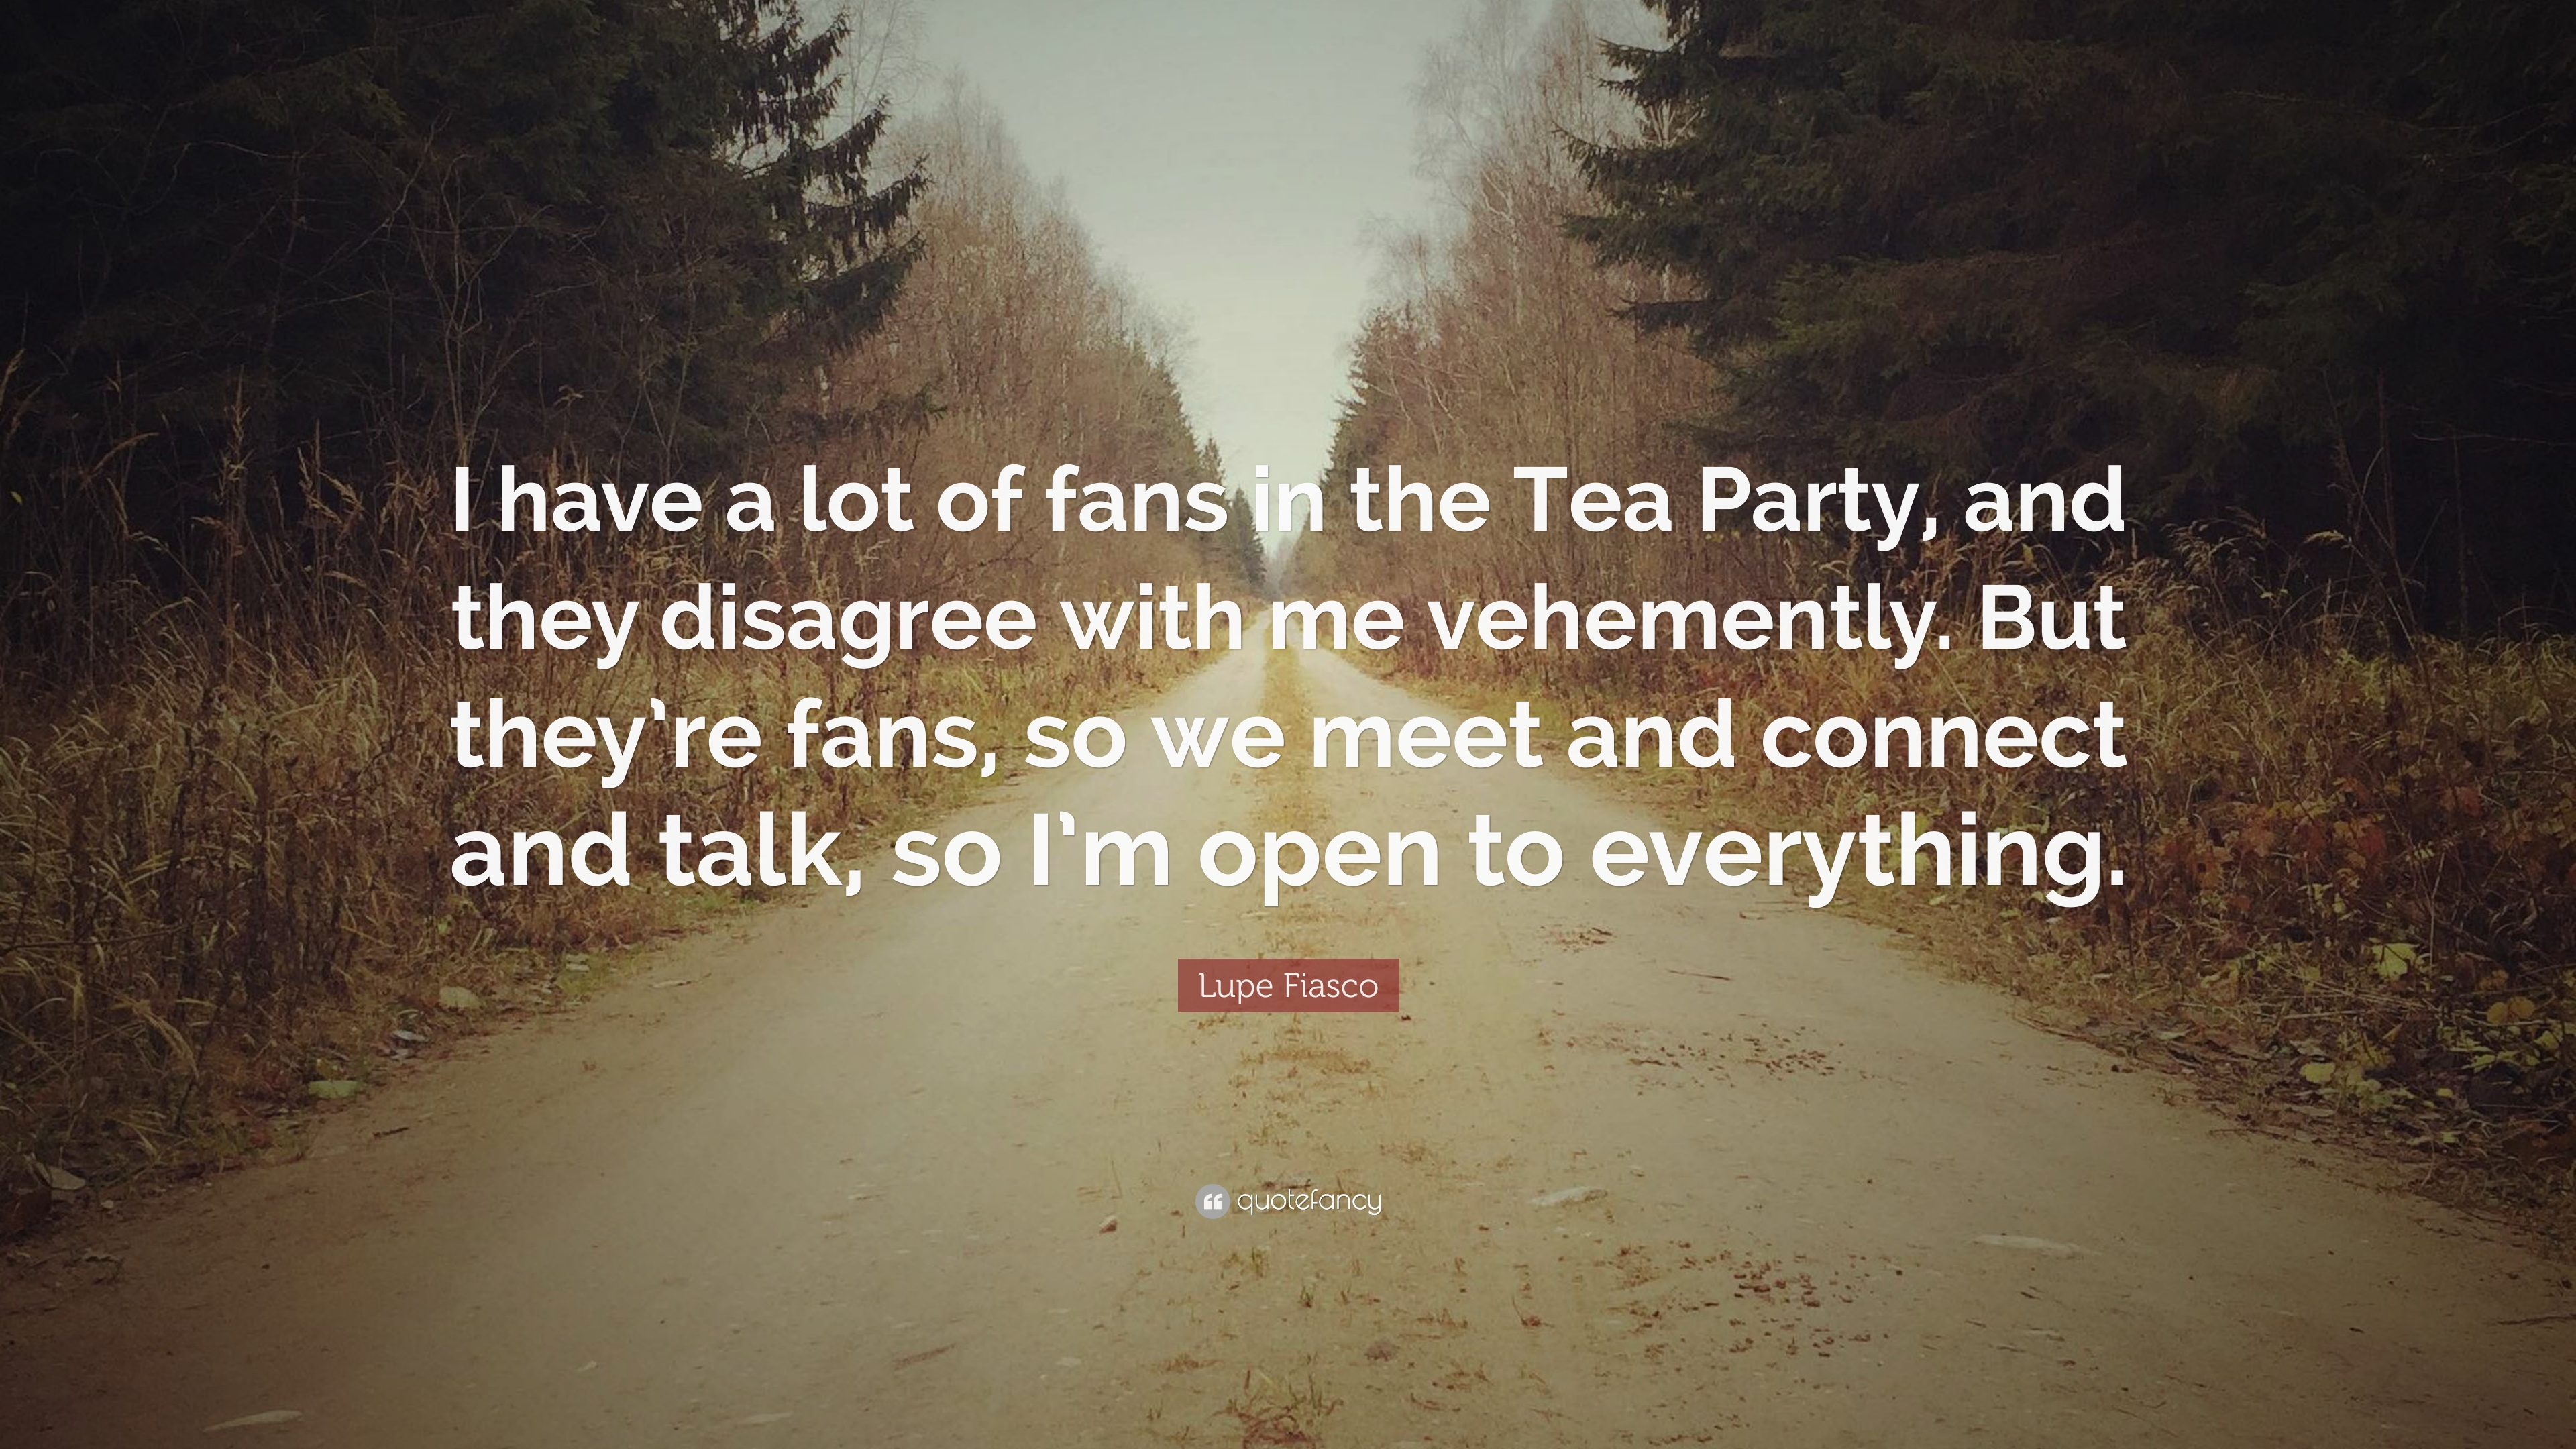 Lupe fiasco quote i have a lot of fans in the tea party and they lupe fiasco quote i have a lot of fans in the tea party m4hsunfo